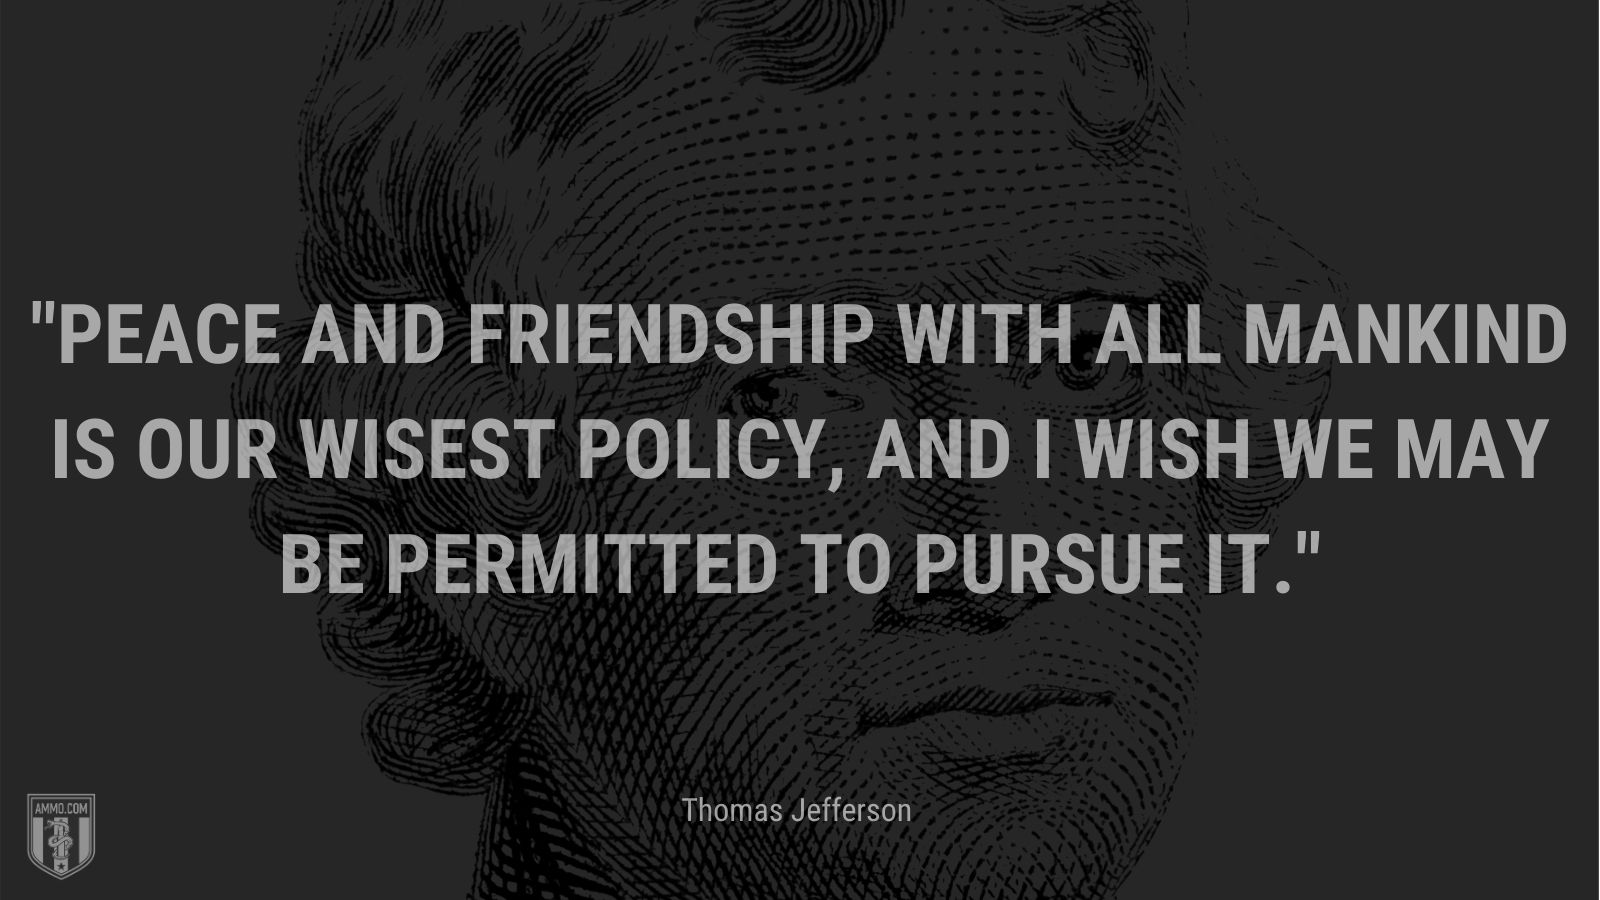 """""""Peace and friendship with all mankind is our wisest policy, and I wish we may be permitted to pursue it."""" - Thomas Jefferson"""